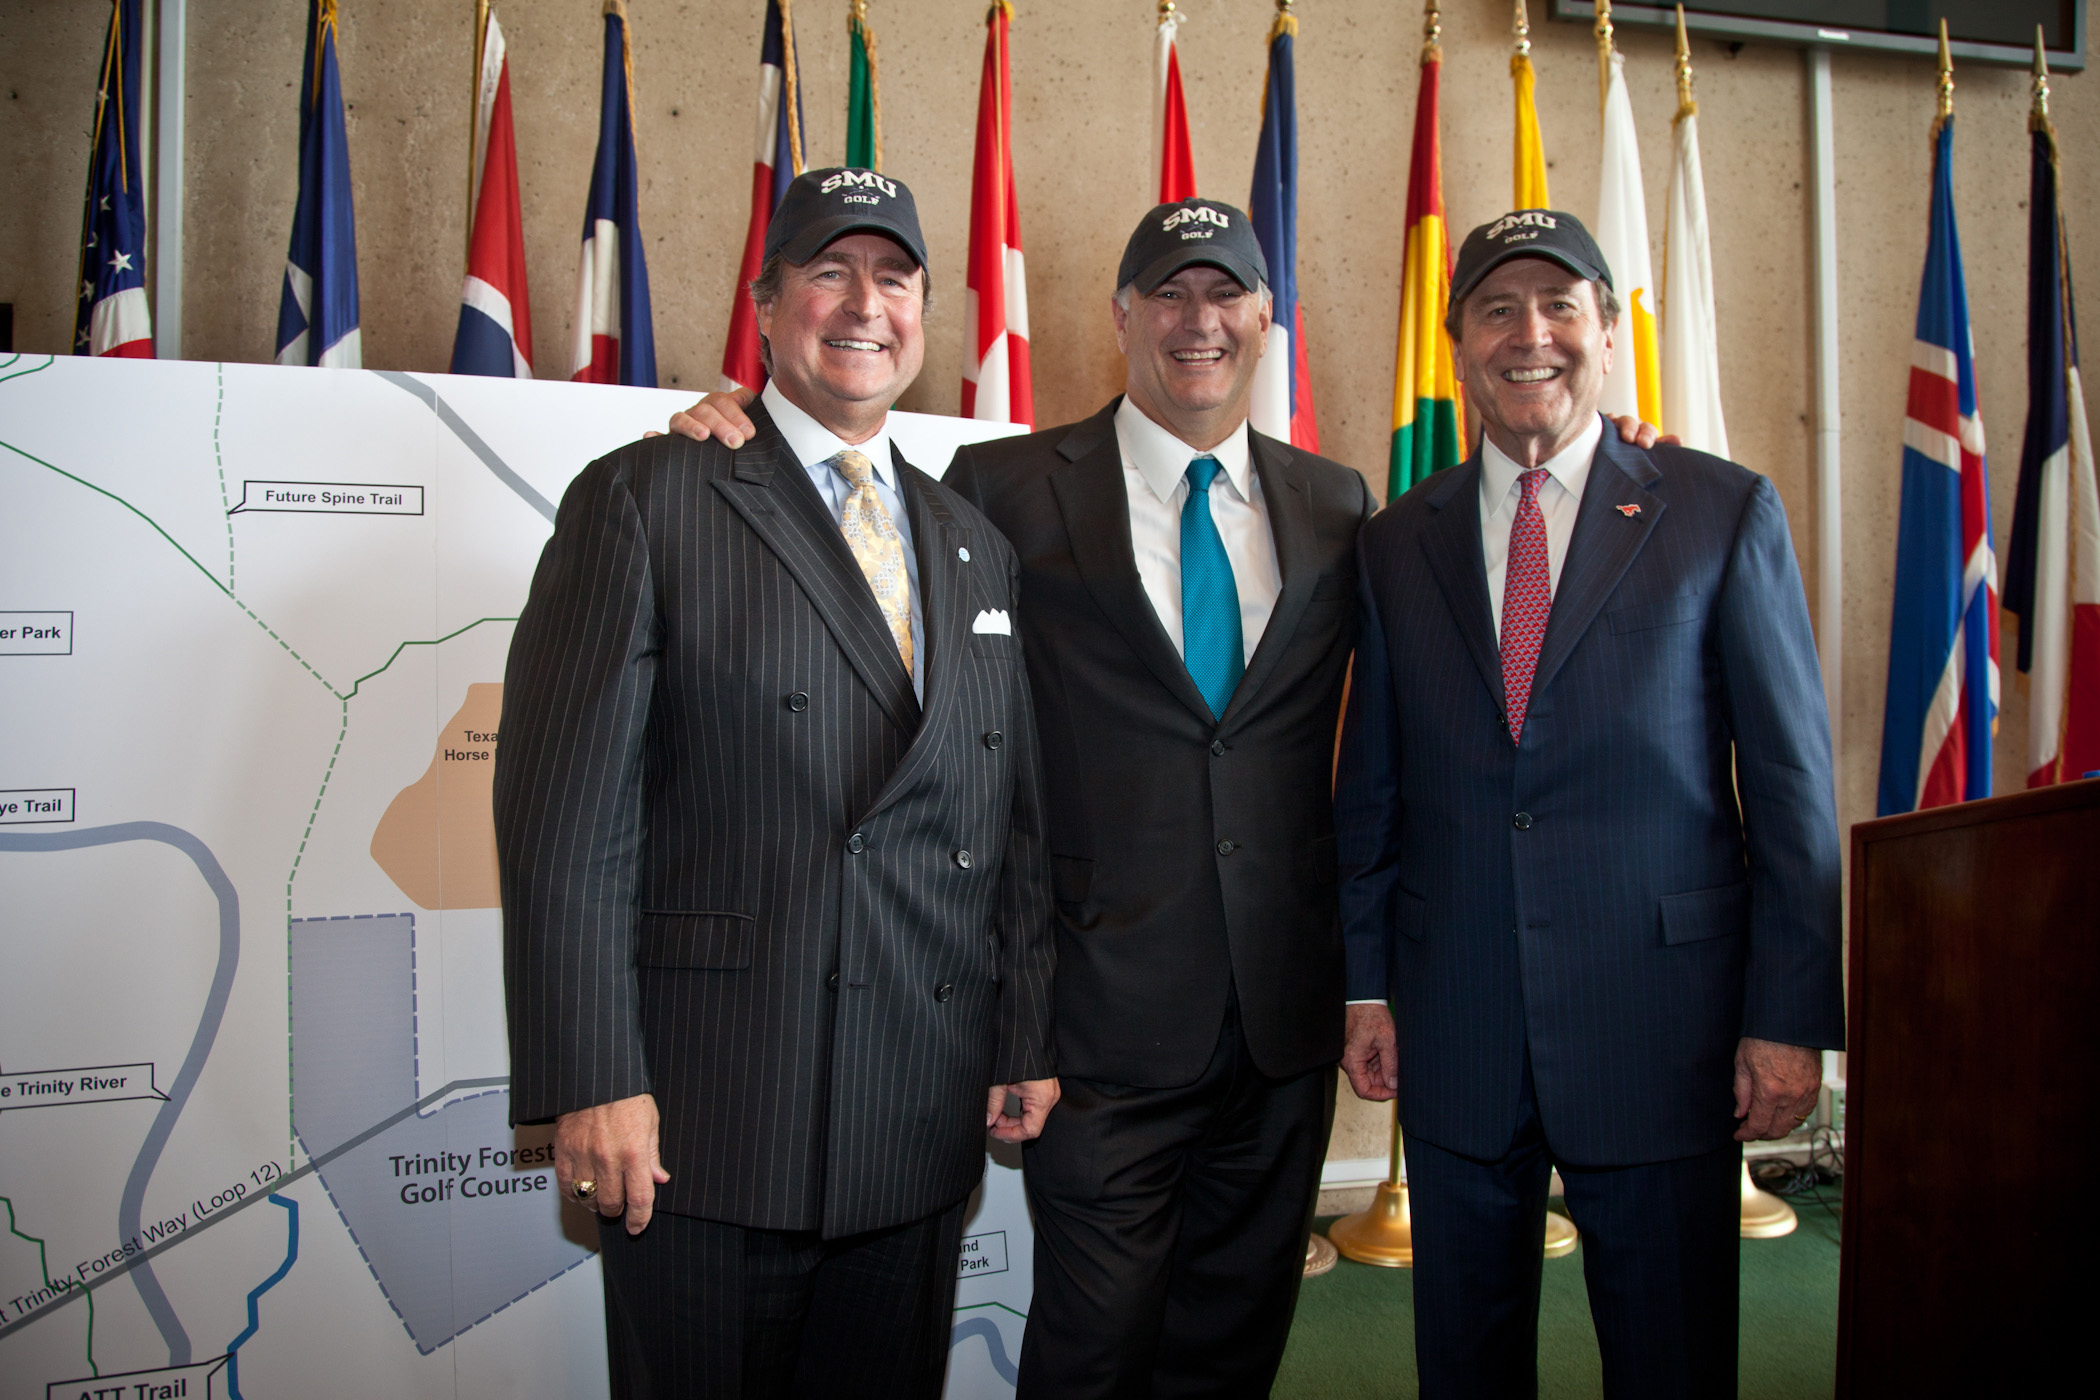 Ron Spears of AT&T, Dallas Mayor Mike Rawlings, and SMU President R. Gerald Turner